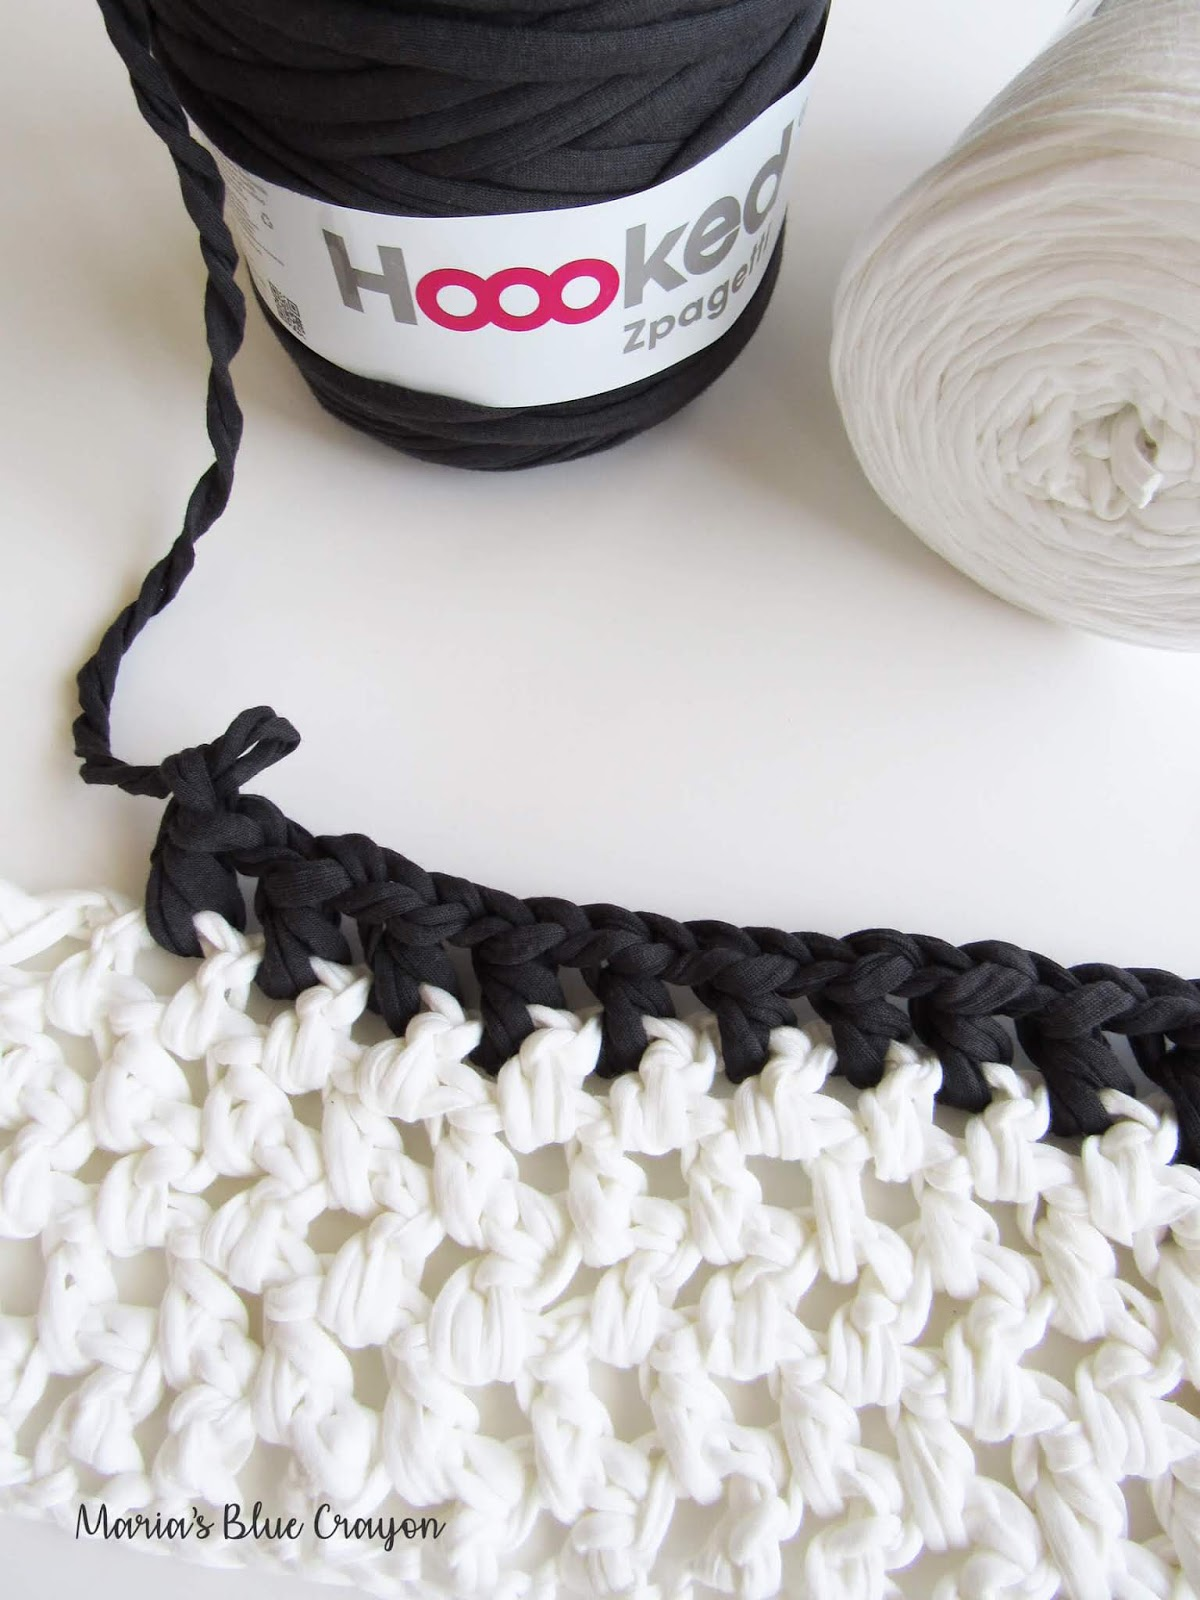 Hoooked Zpagetti Yarn Review Plus Free Crochet Rug Pattern Marias